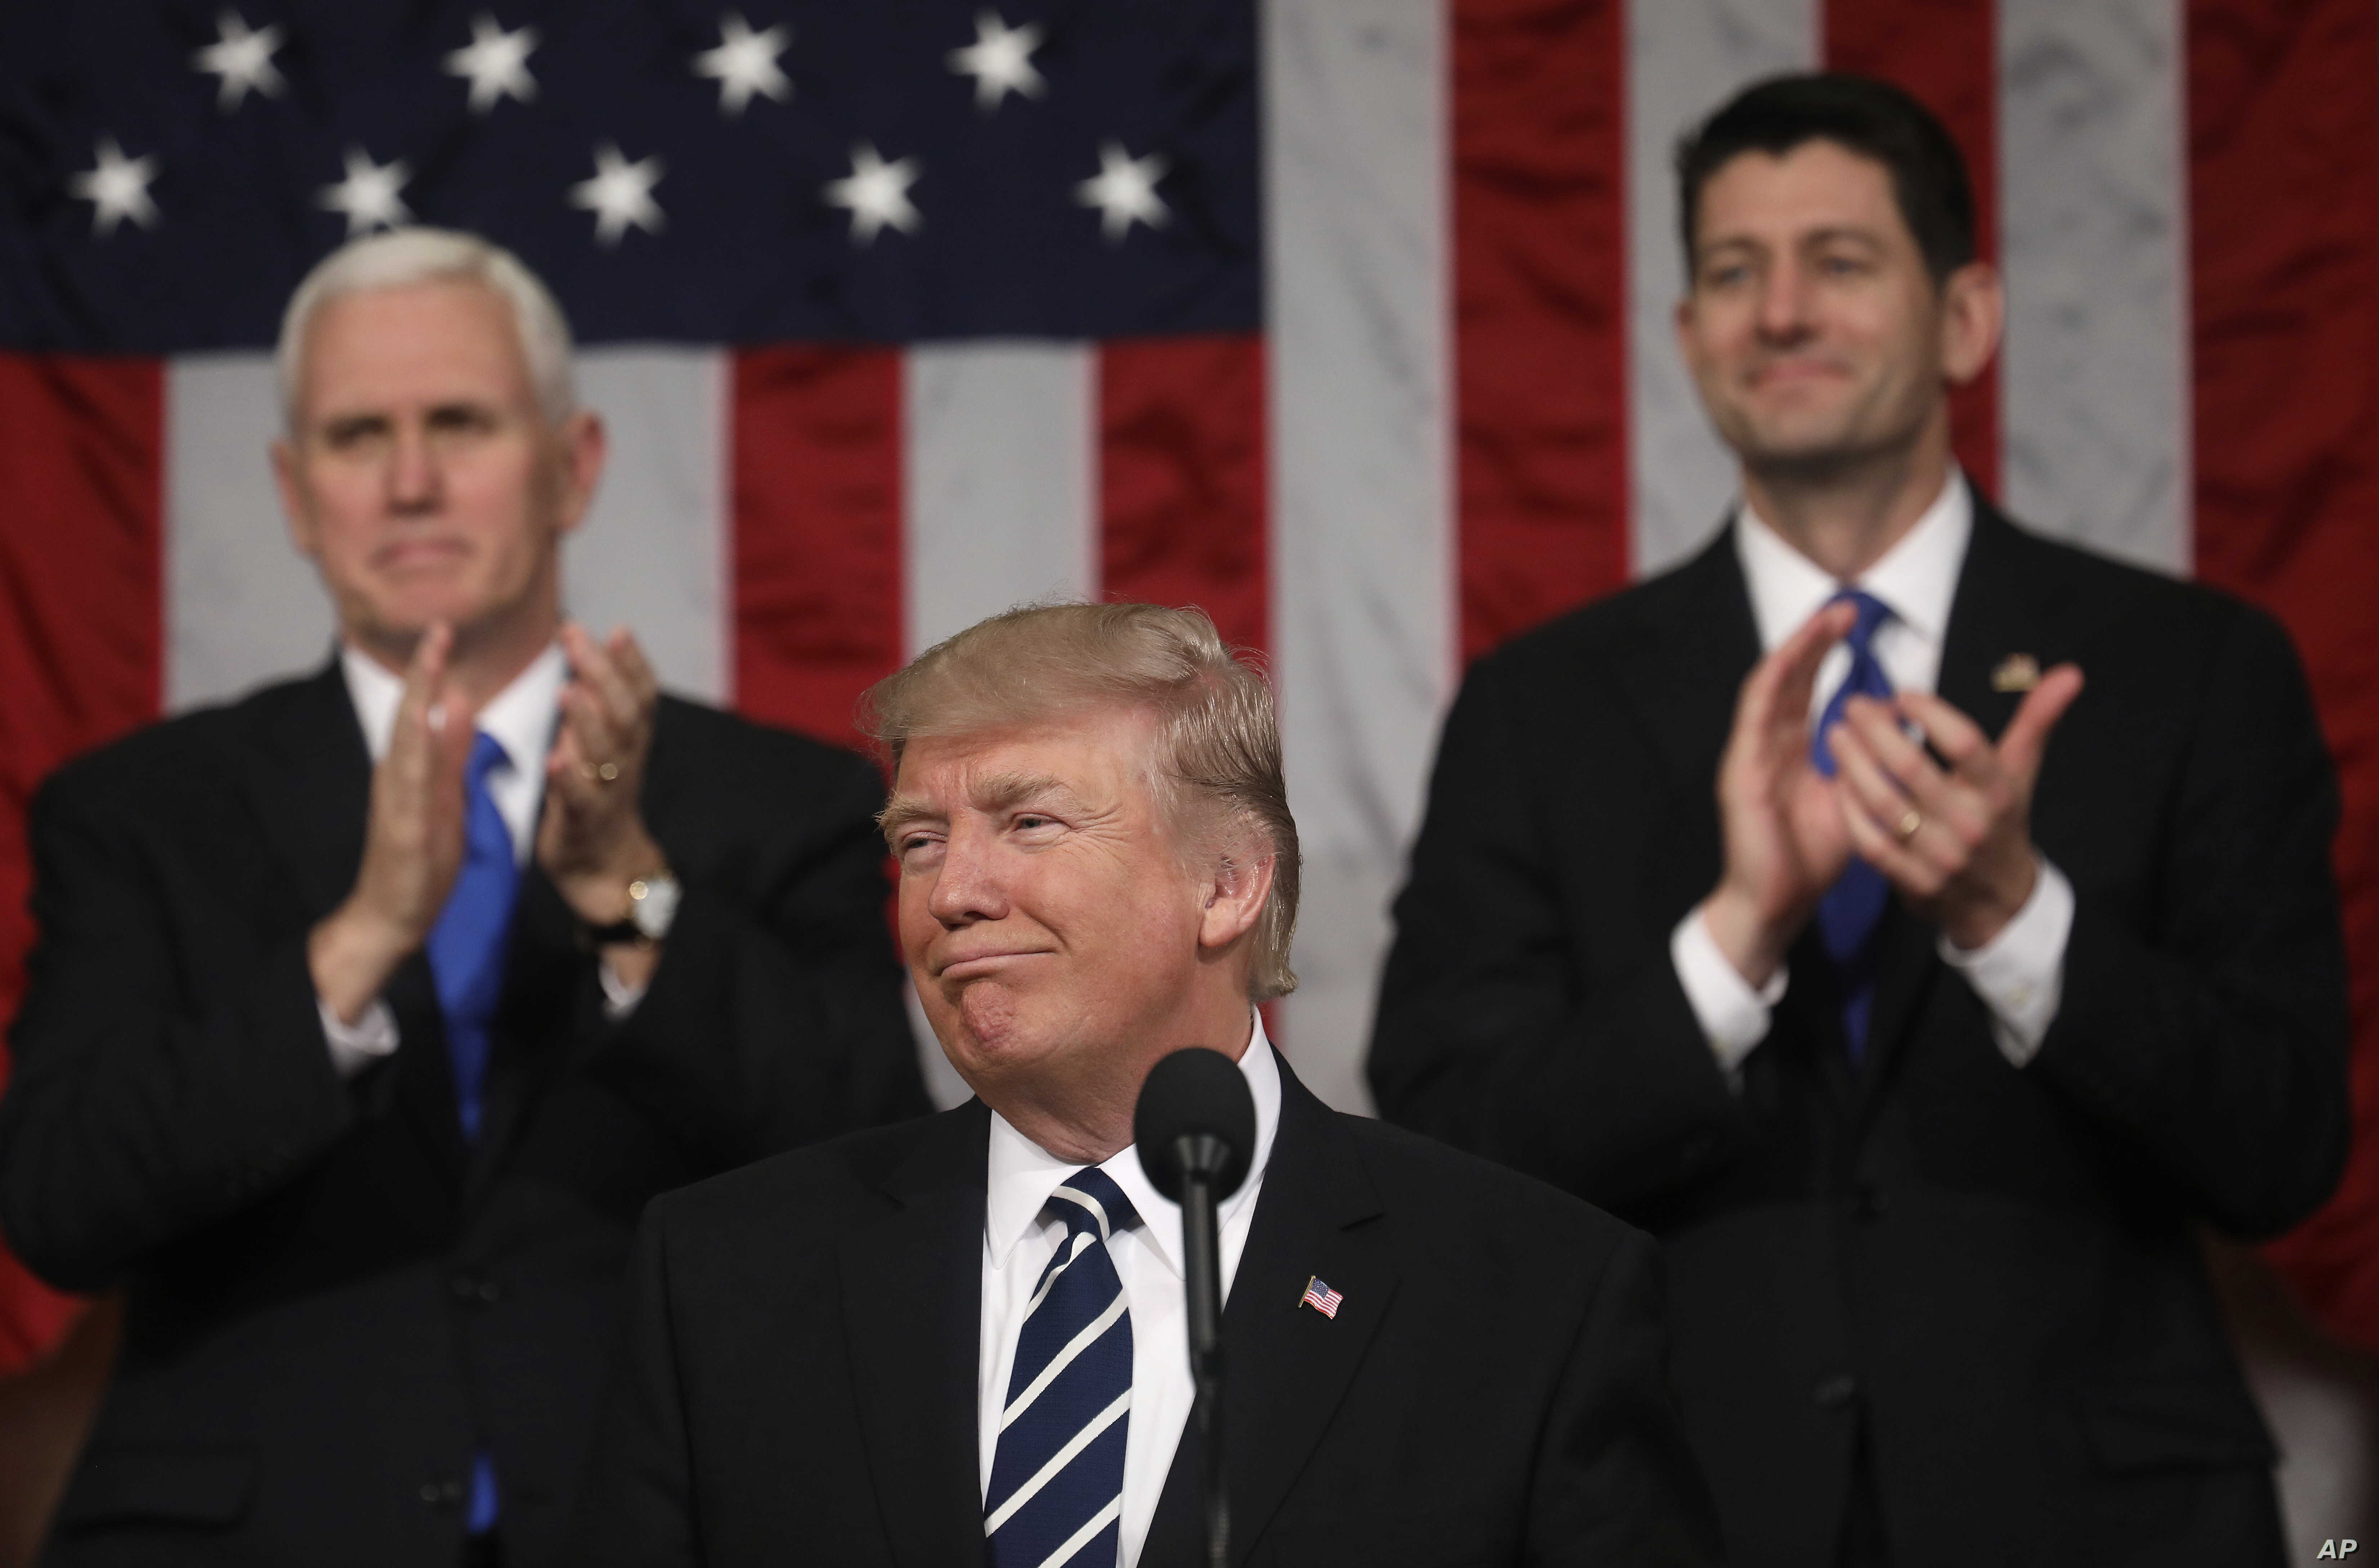 President Donald Trump addresses a joint session of Congress on Capitol Hill in Washington, Feb. 28, 2017.